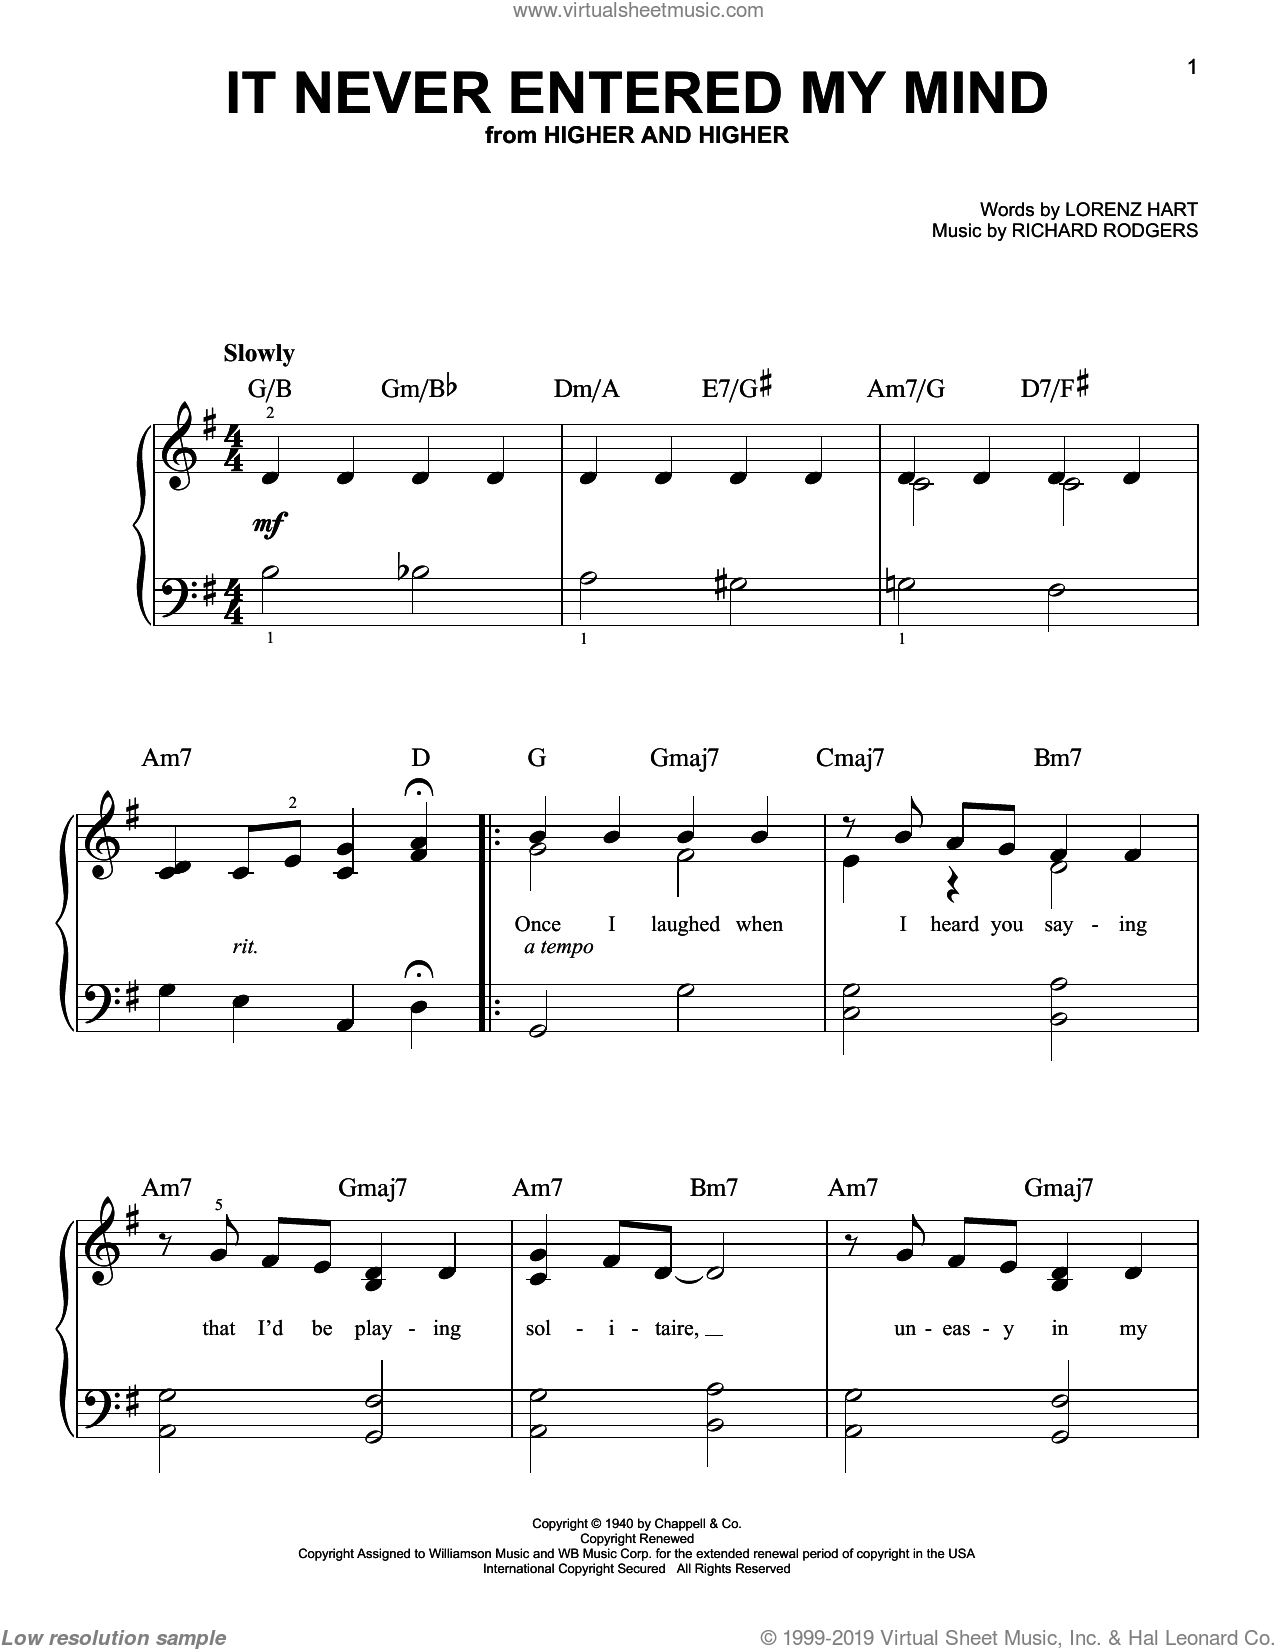 It Never Entered My Mind sheet music for piano solo by Richard Rodgers